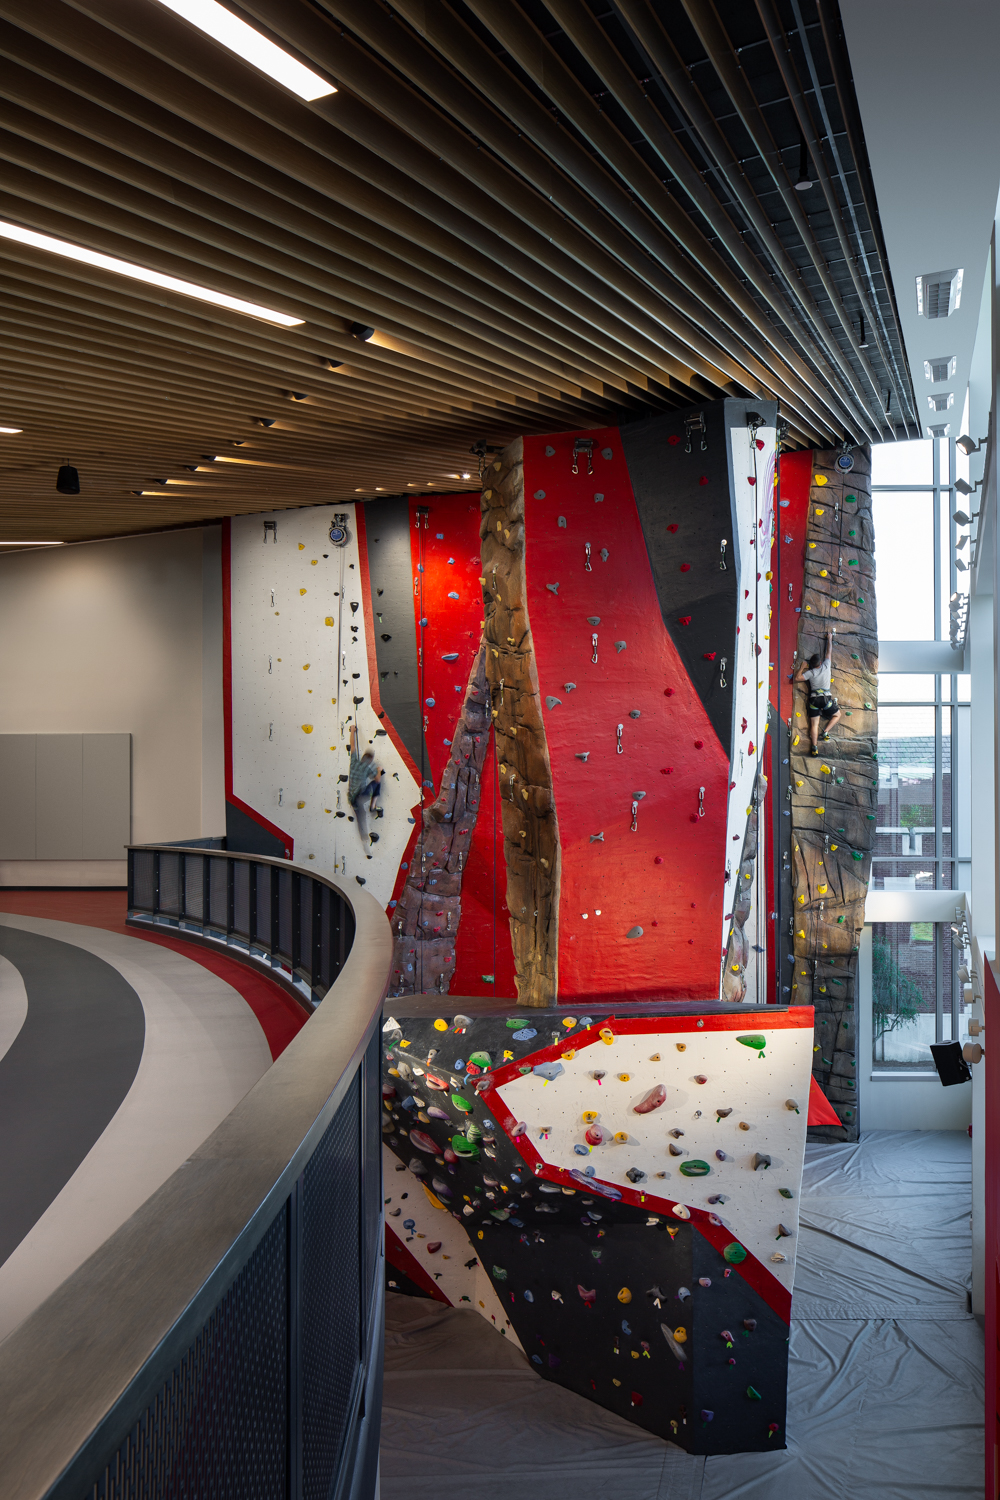 Loved having talent involved in this project, especially for the climbing wall! Used a slow shutter speed to convey motion as the models climbed.